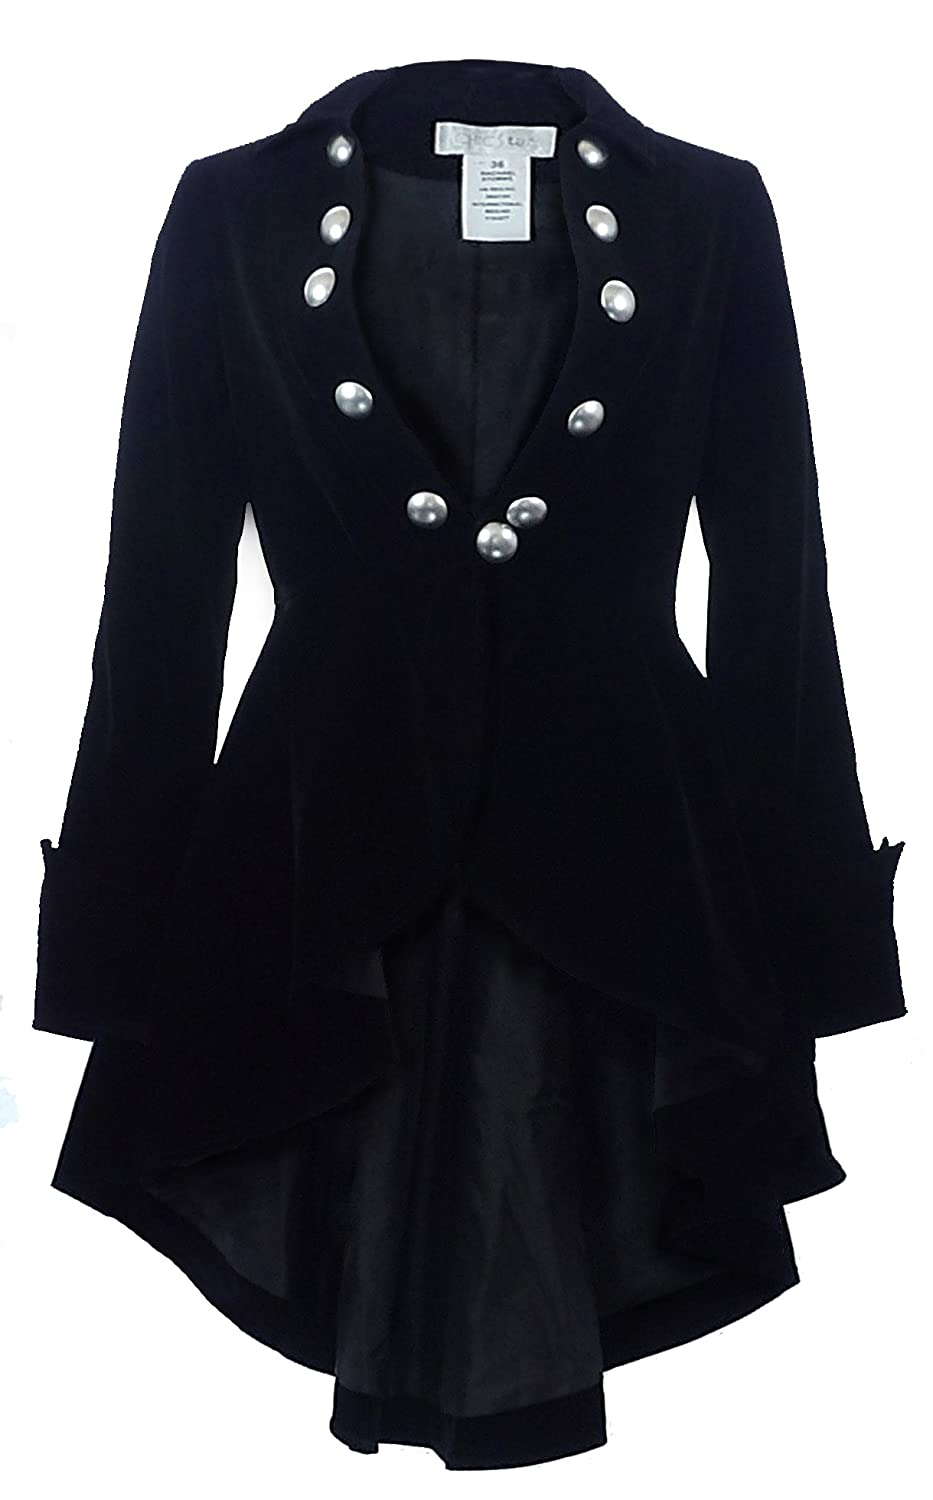 Steampunk Jacket | Steampunk Coat, Overcoat, Cape -The Velvet Wine Waterfall- Victorian Gothic Ruffle Style Jacket-USA Stock! $75.00 AT vintagedancer.com